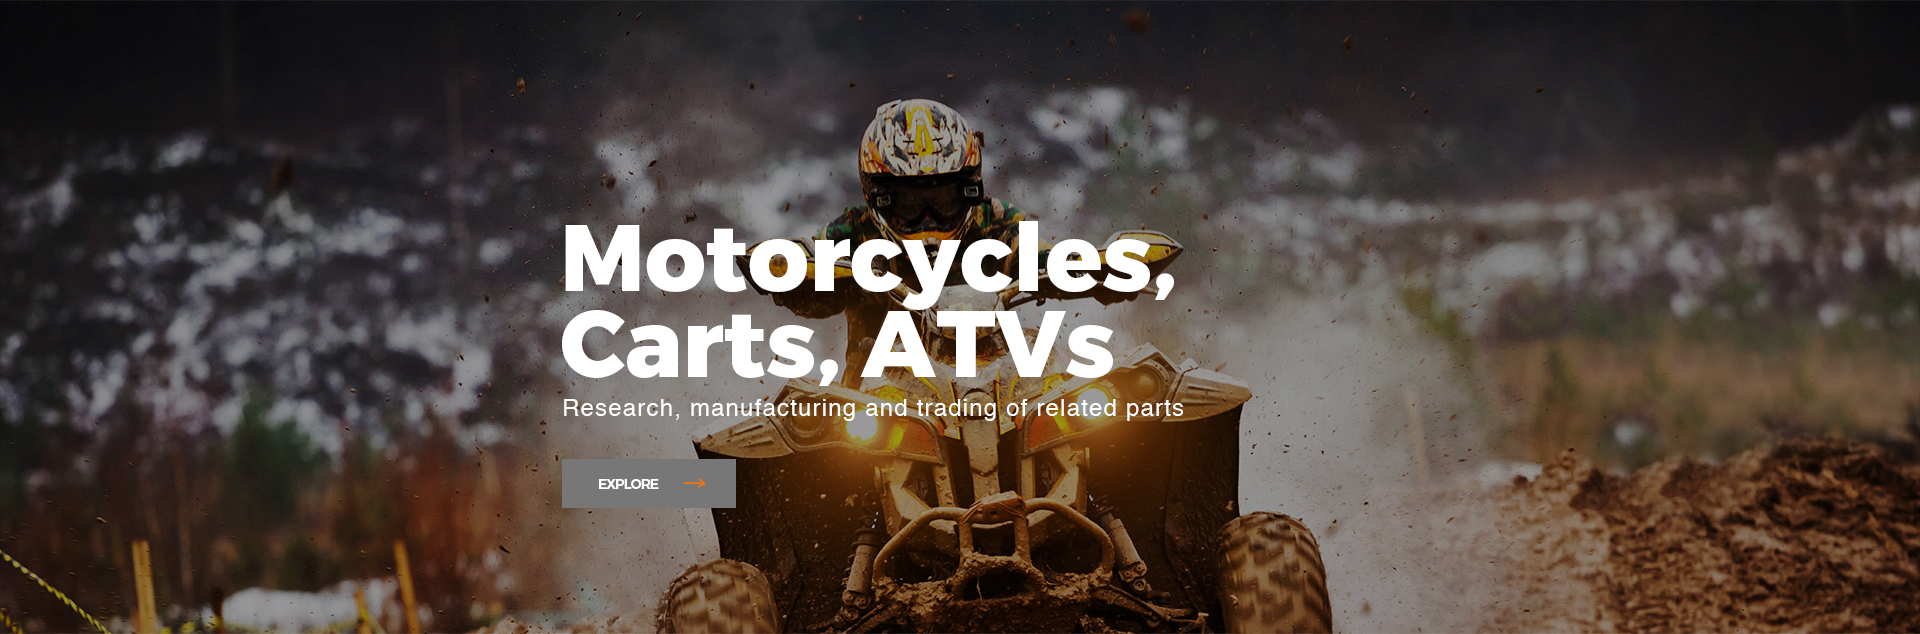 motorcycles, carts, ATVs